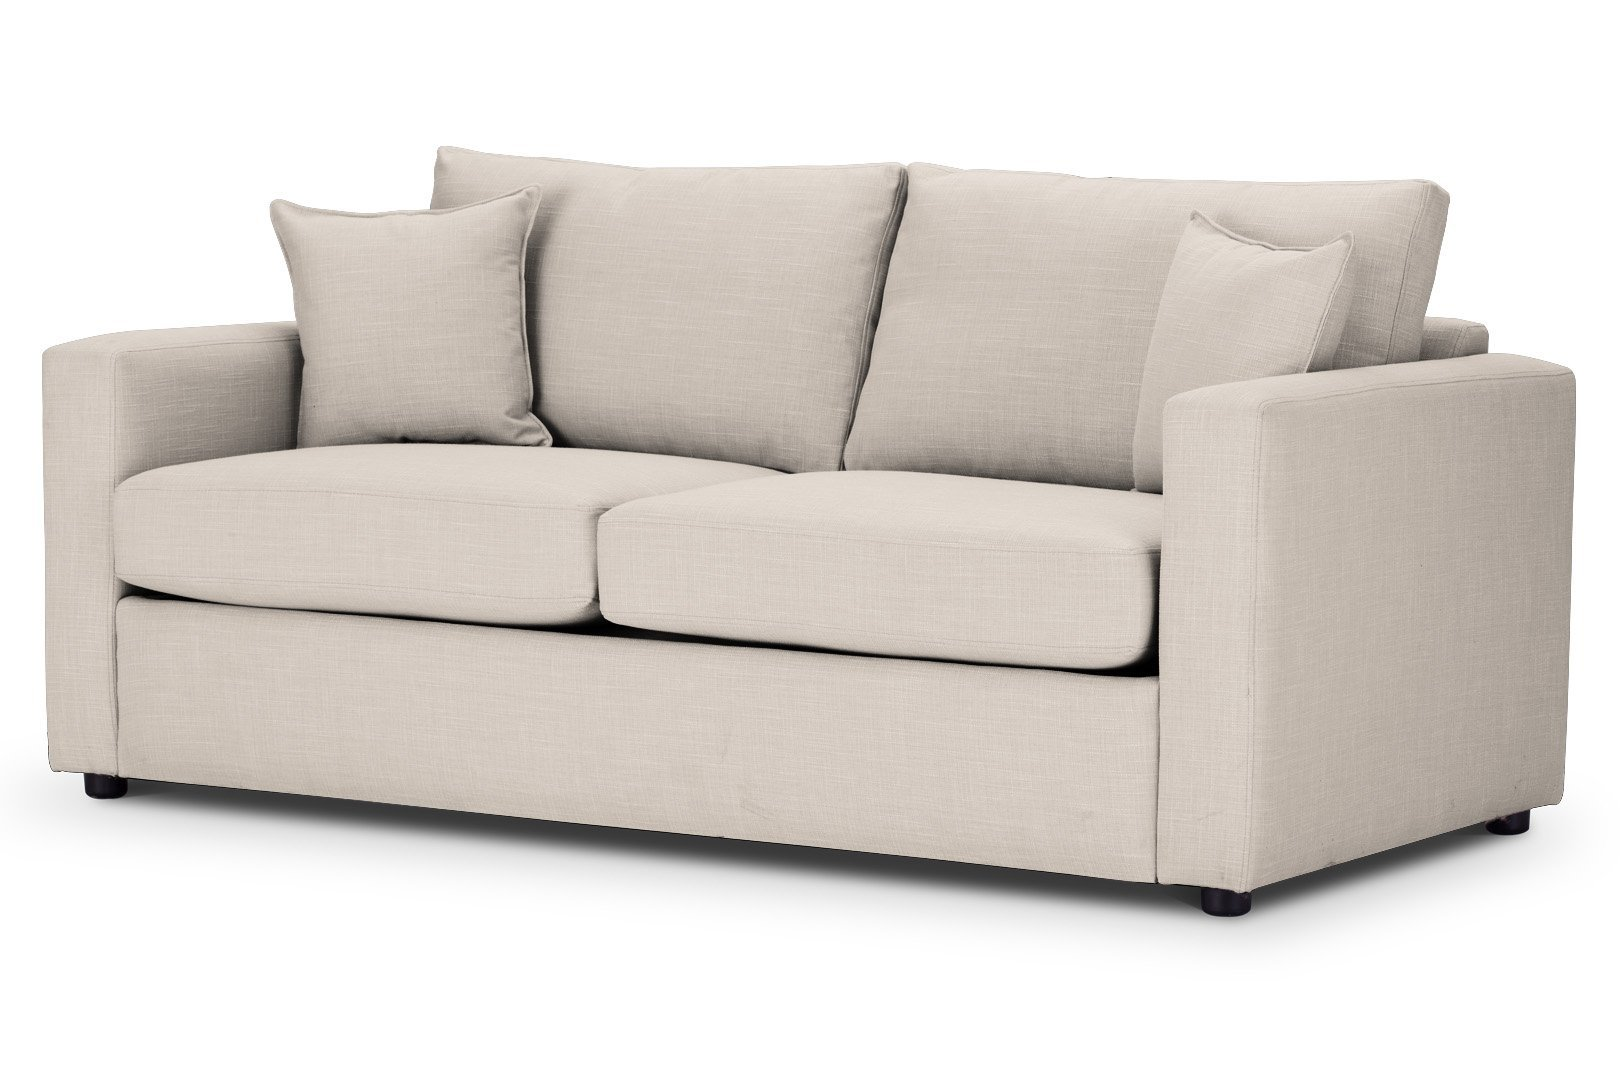 Sofa Bed Square arms in Emporio Cream Fabric